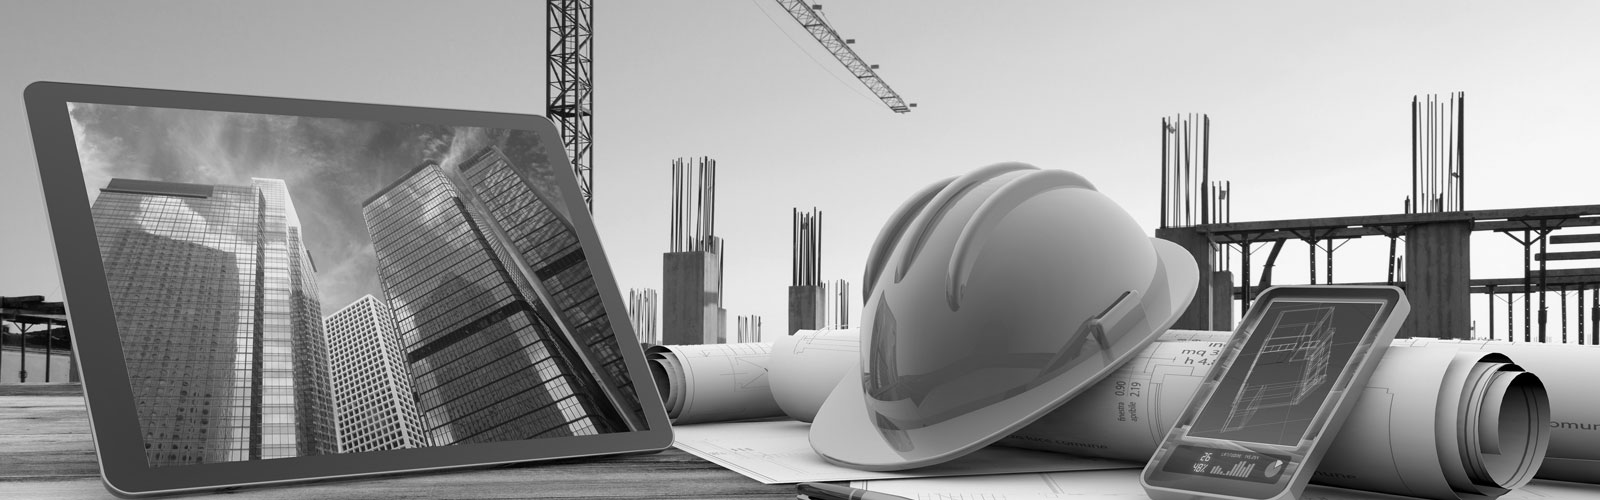 pp-construction-banner